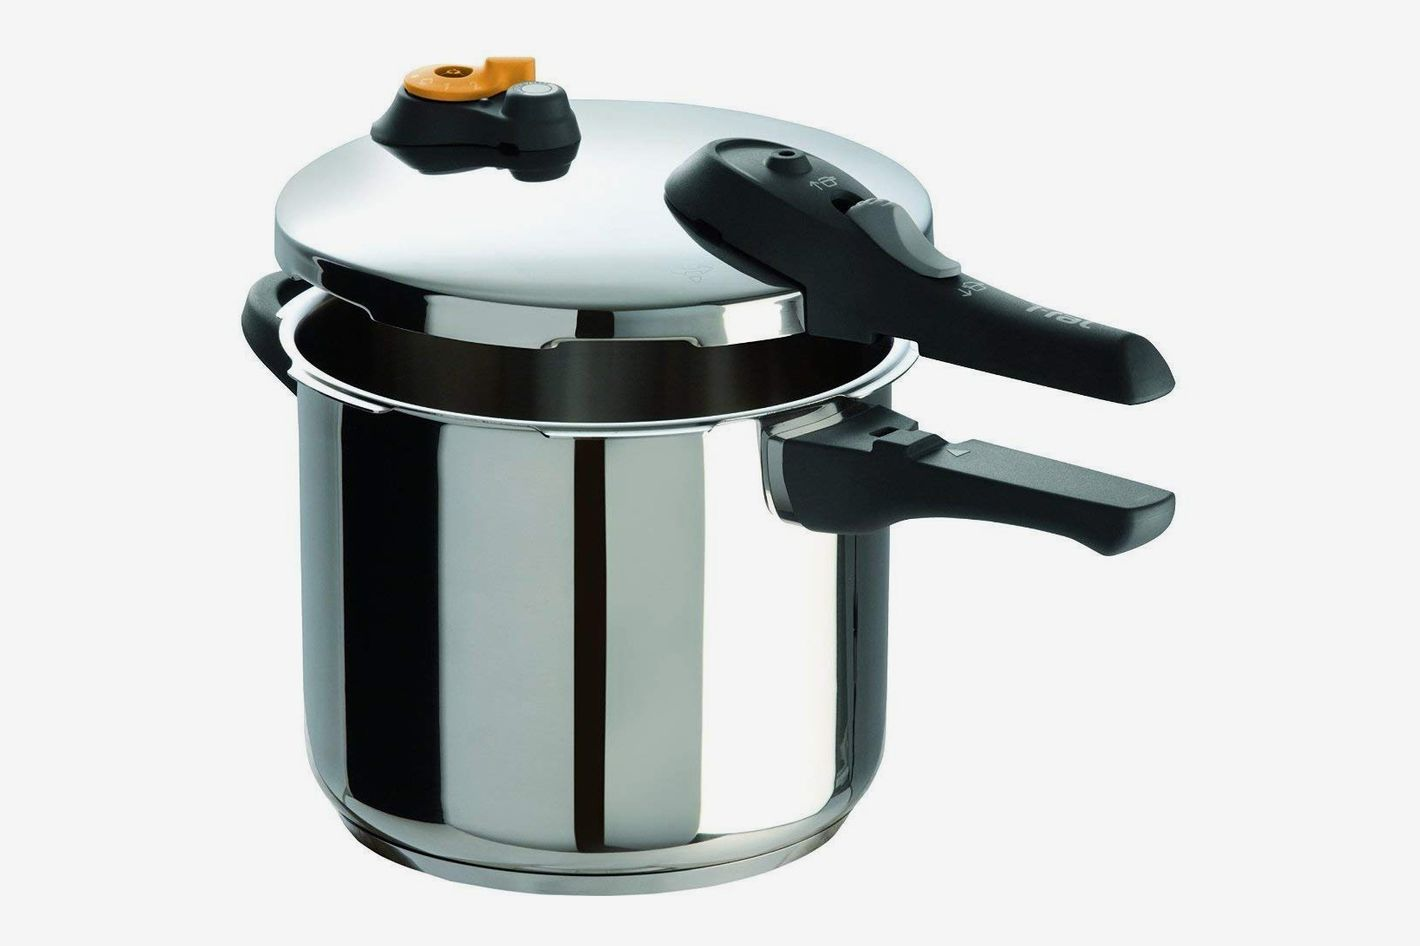 T-fal Pressure Cooker, Pressure Canner With Pressure Control